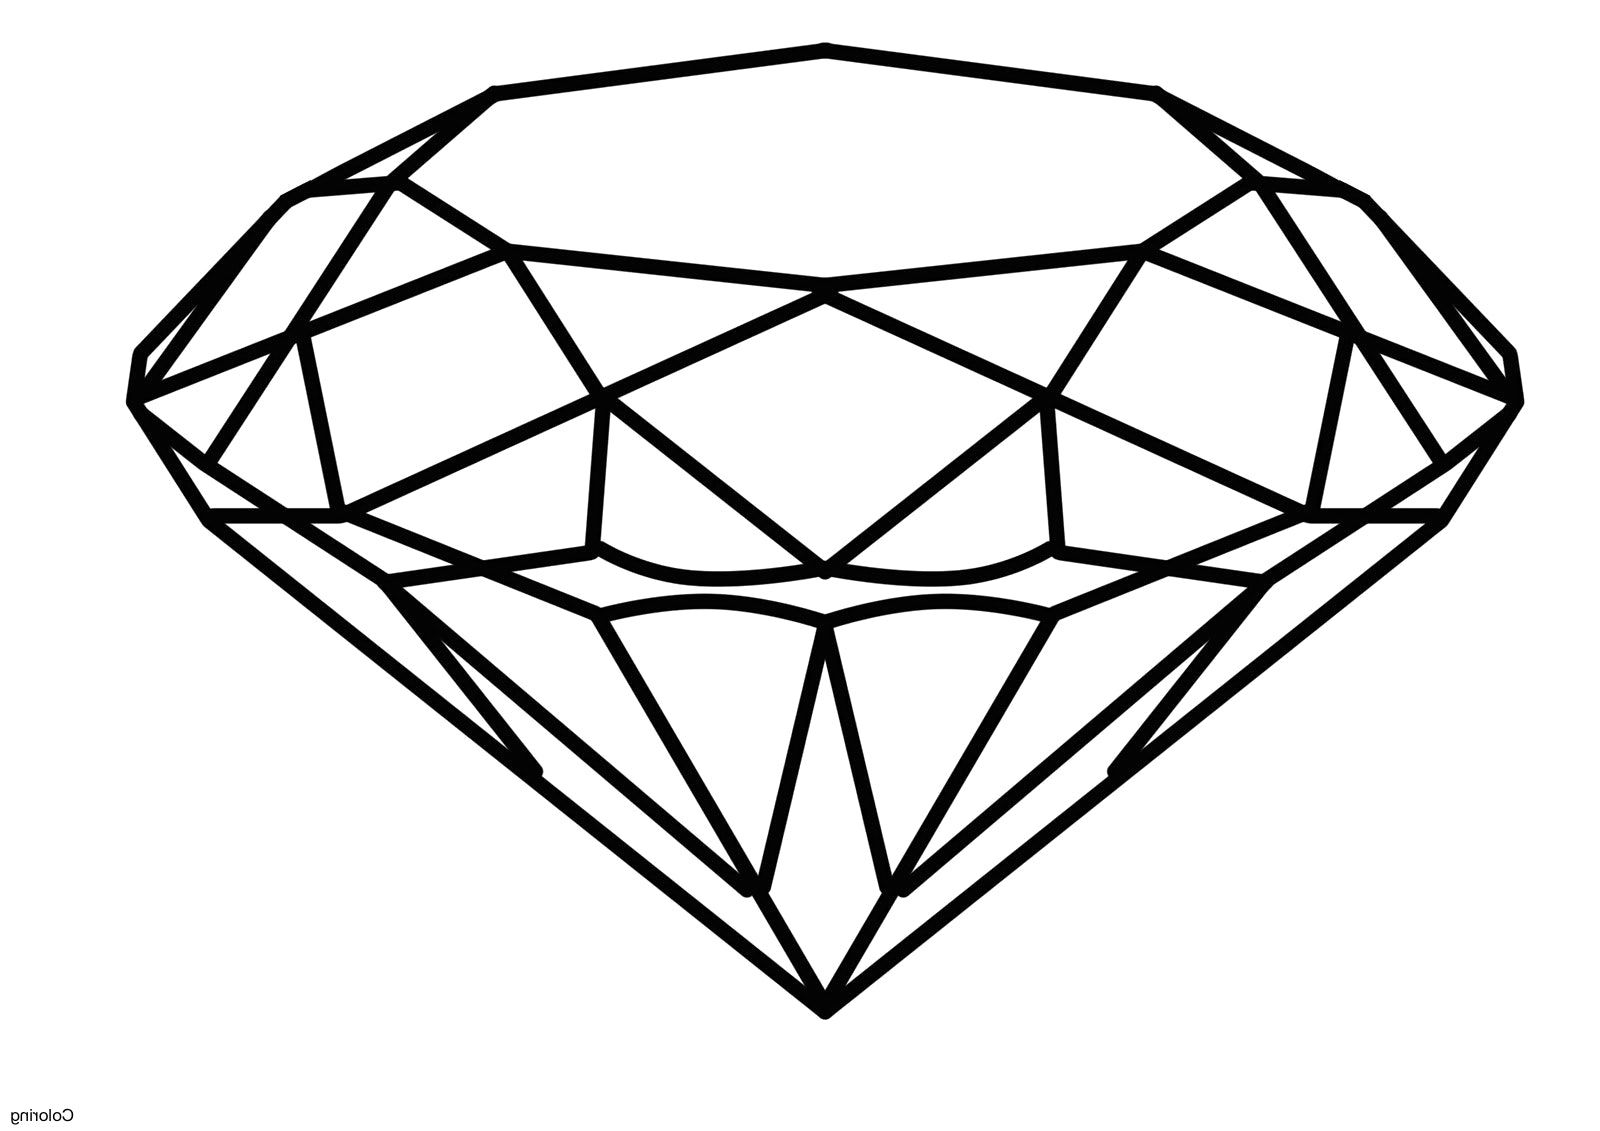 Diamond Coloring Pages Diamond Drawing Diamond Sketch Shape Coloring Pages